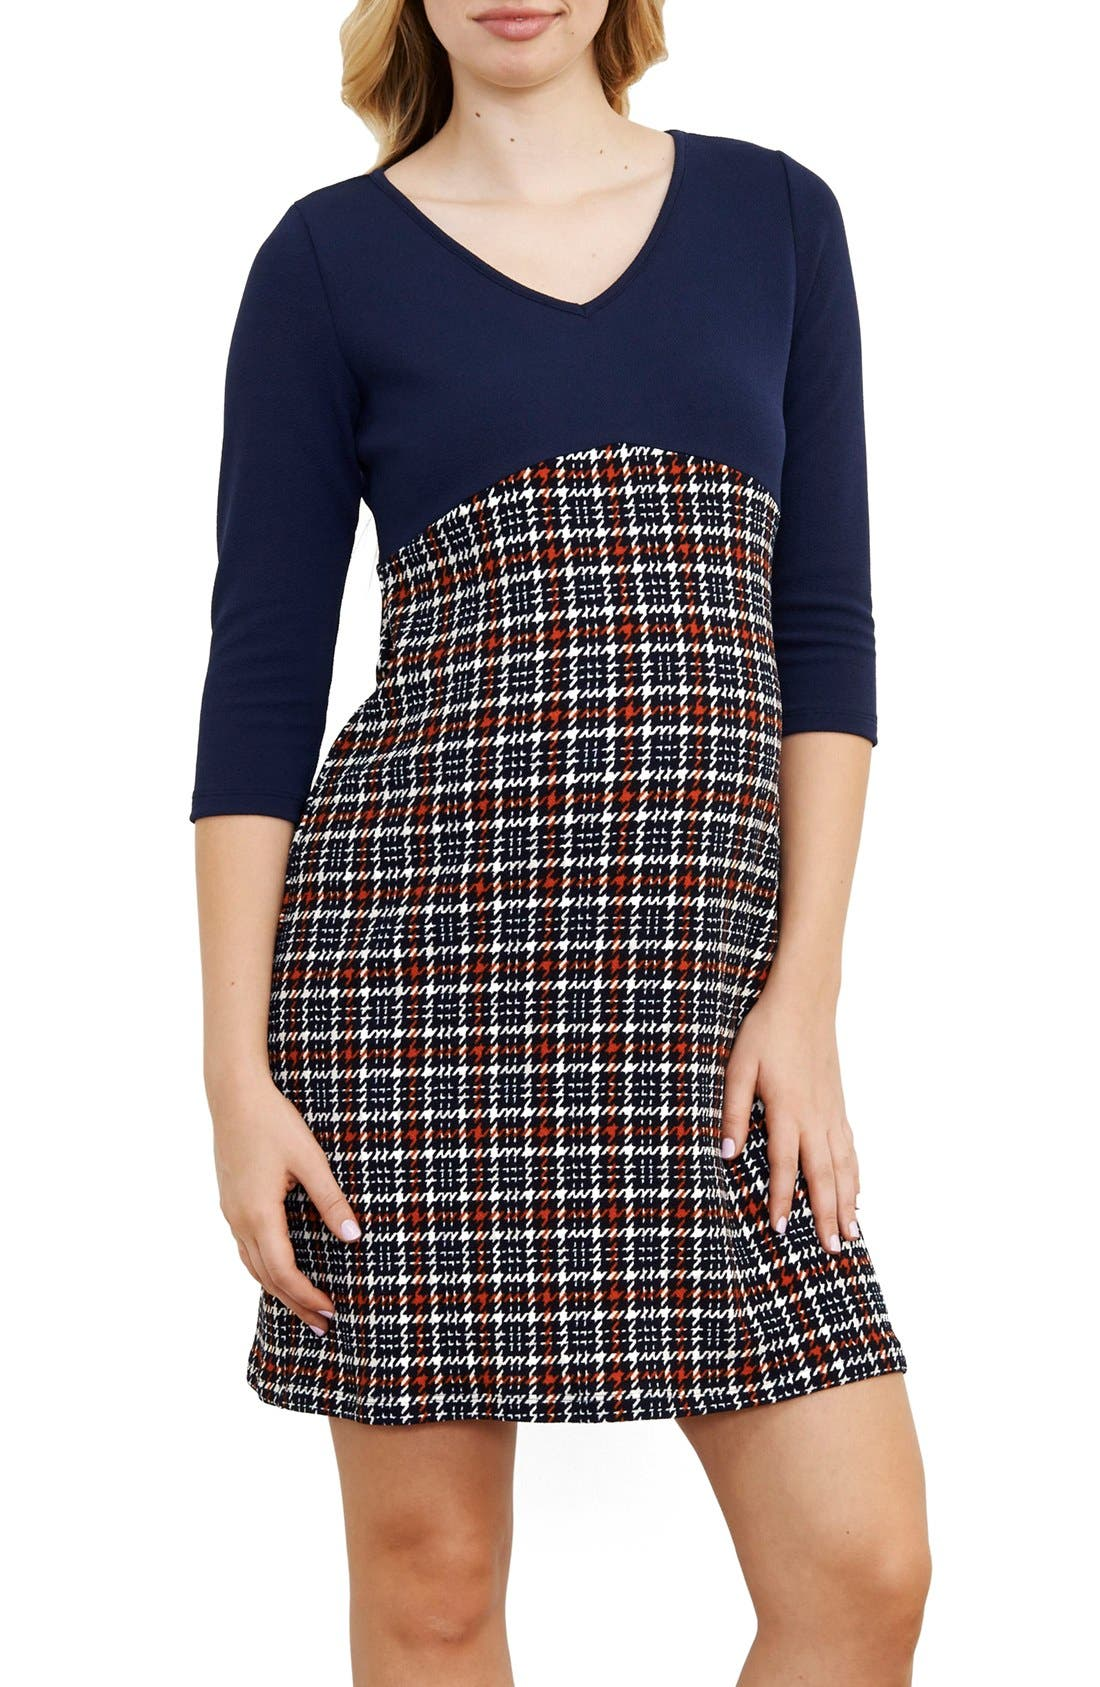 Empire Waist Maternity Dress,                         Main,                         color, NAVY/ ORANGE CHECKERS